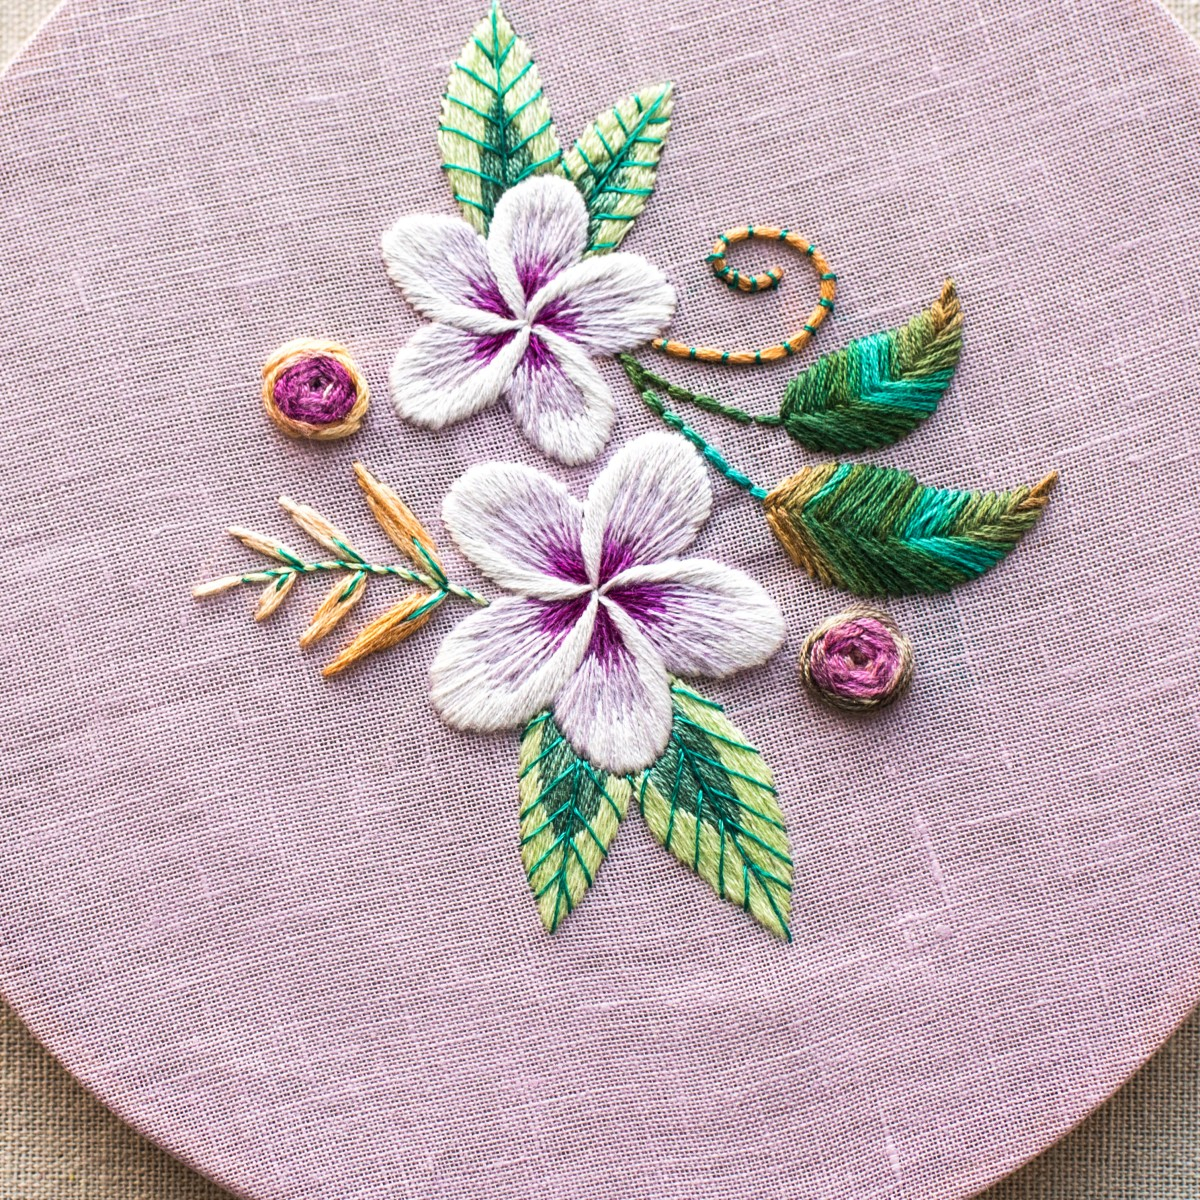 Rose Patterns For Embroidery 7 Beautiful Ways To Hand Embroider Flowers